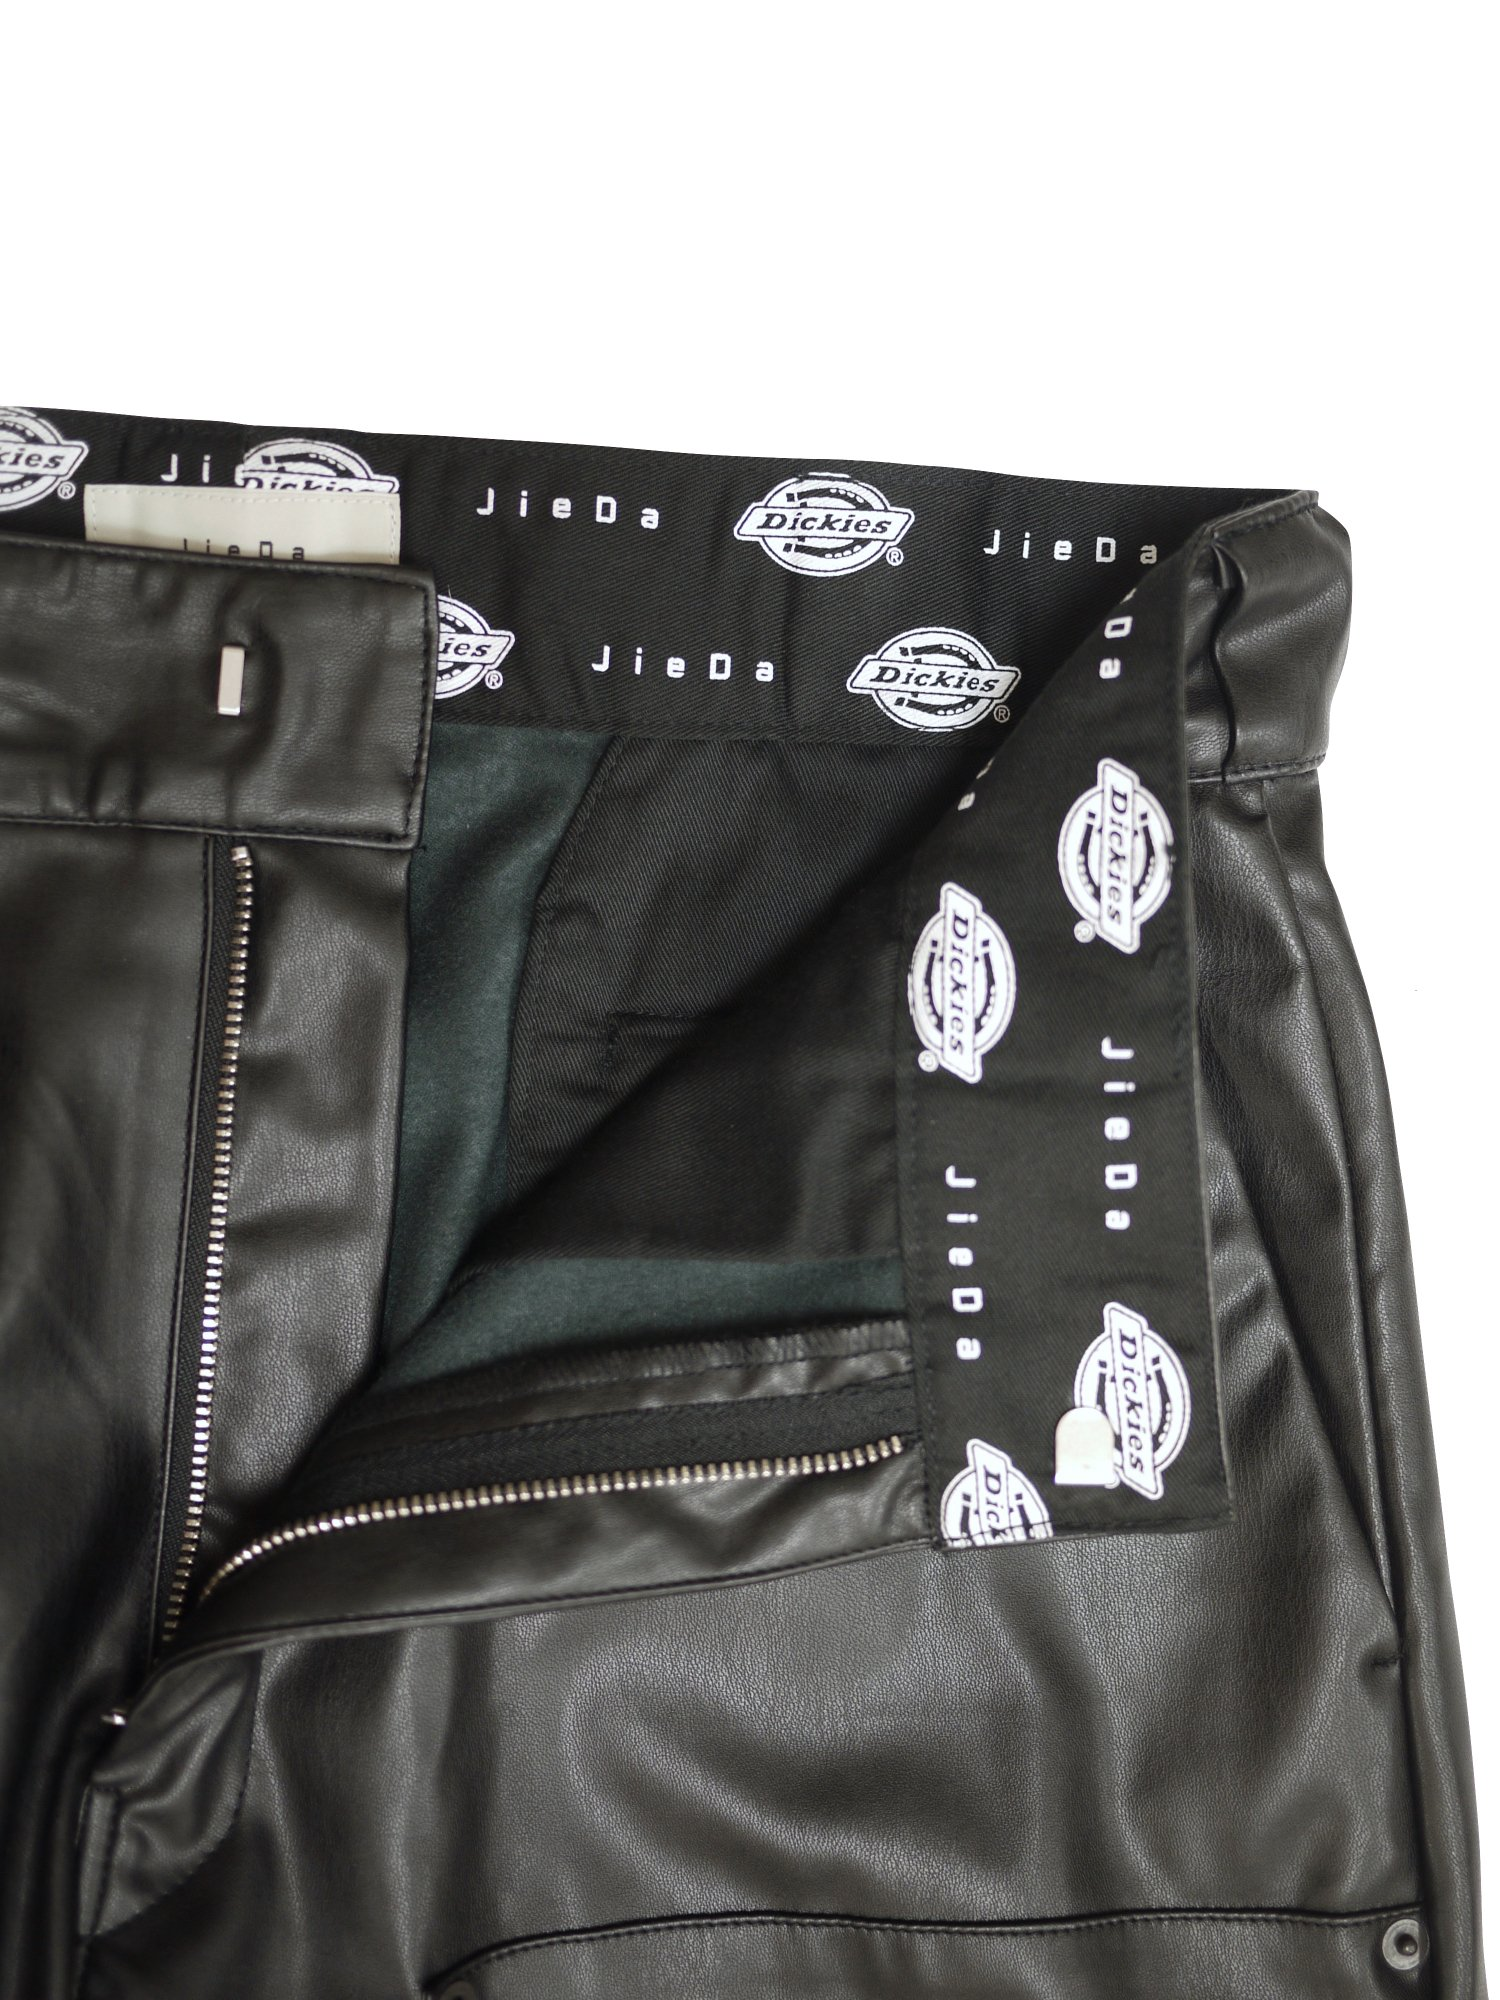 JieDa×Dickies<br />FAKE LEATHER DOUBLE KNEE PANTS / BLACK<img class='new_mark_img2' src='https://img.shop-pro.jp/img/new/icons47.gif' style='border:none;display:inline;margin:0px;padding:0px;width:auto;' />